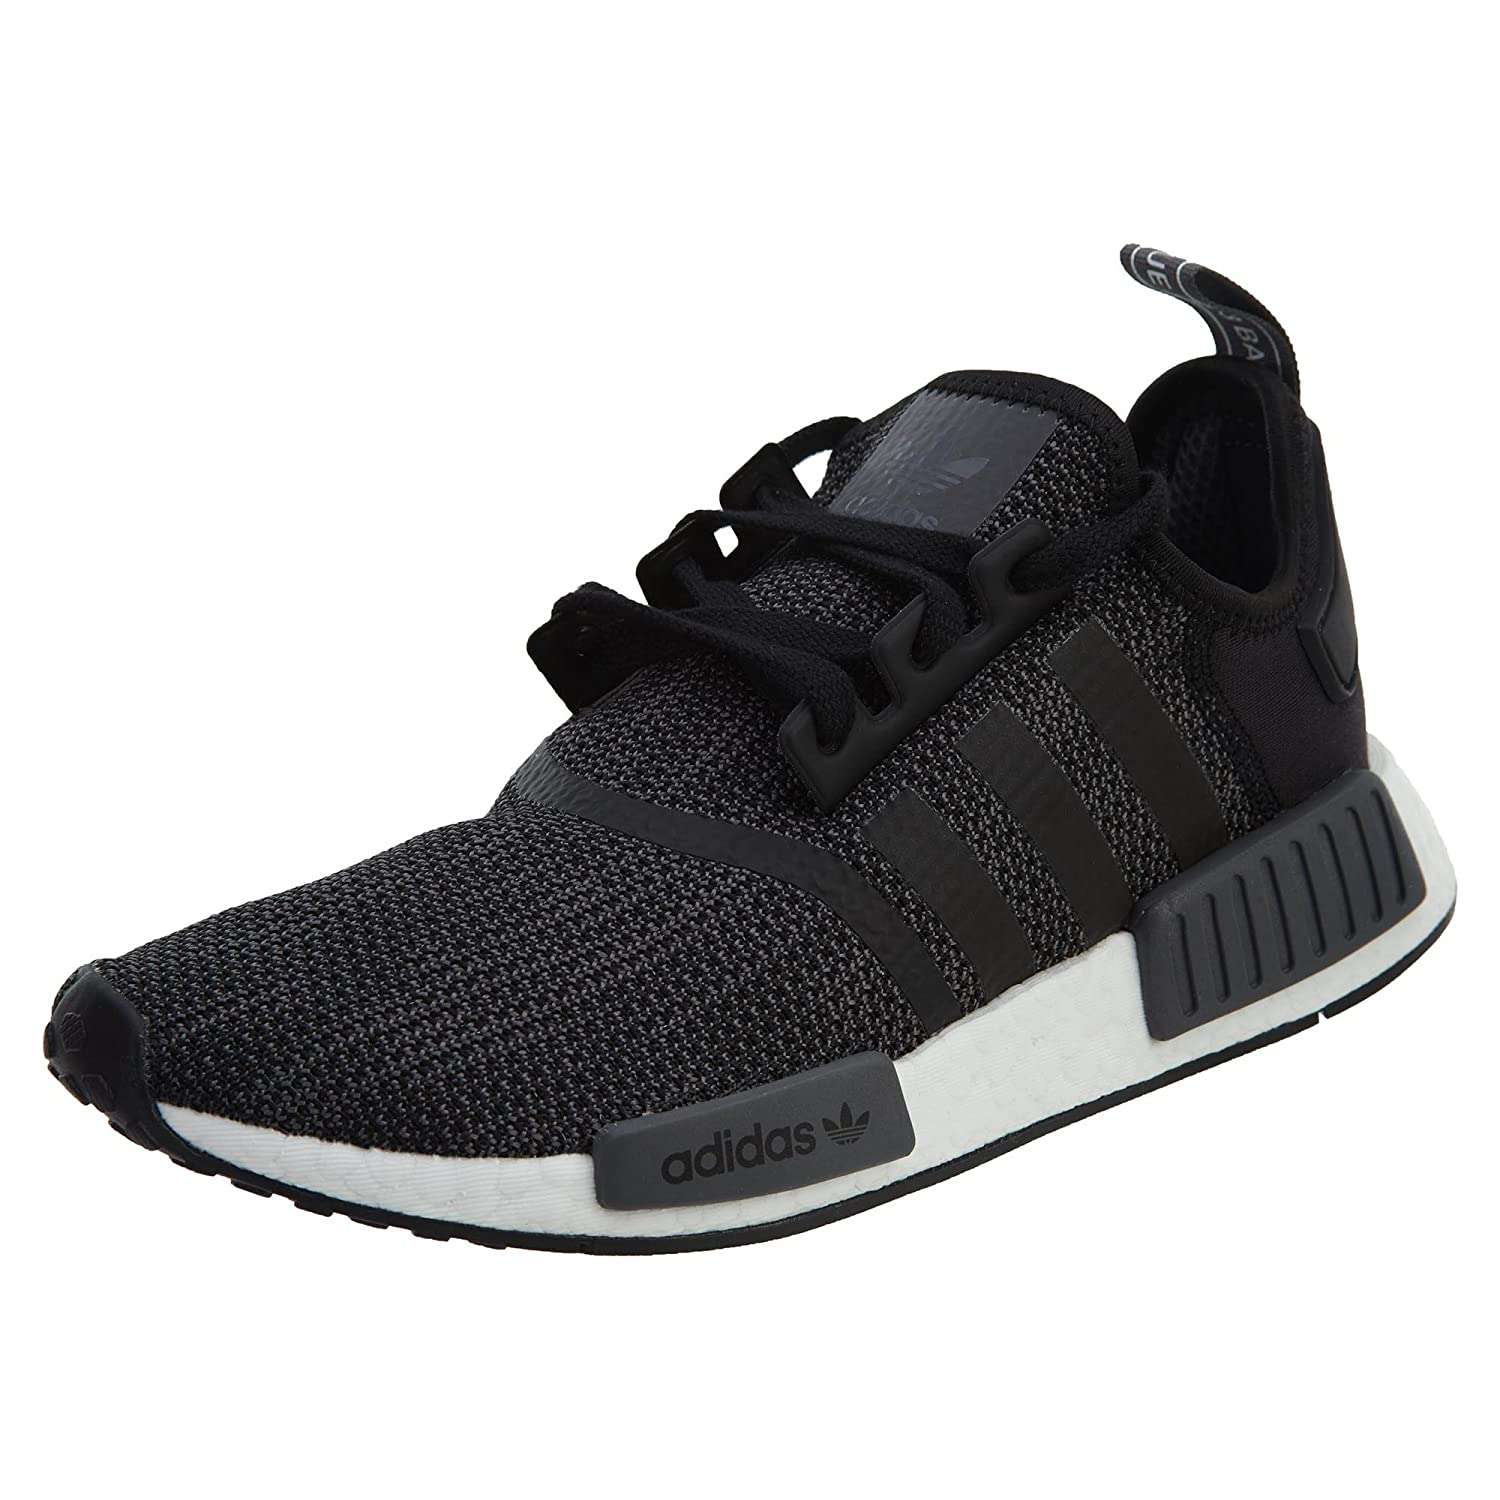 adidas Originals NMD R1 Shoe Men's Casual